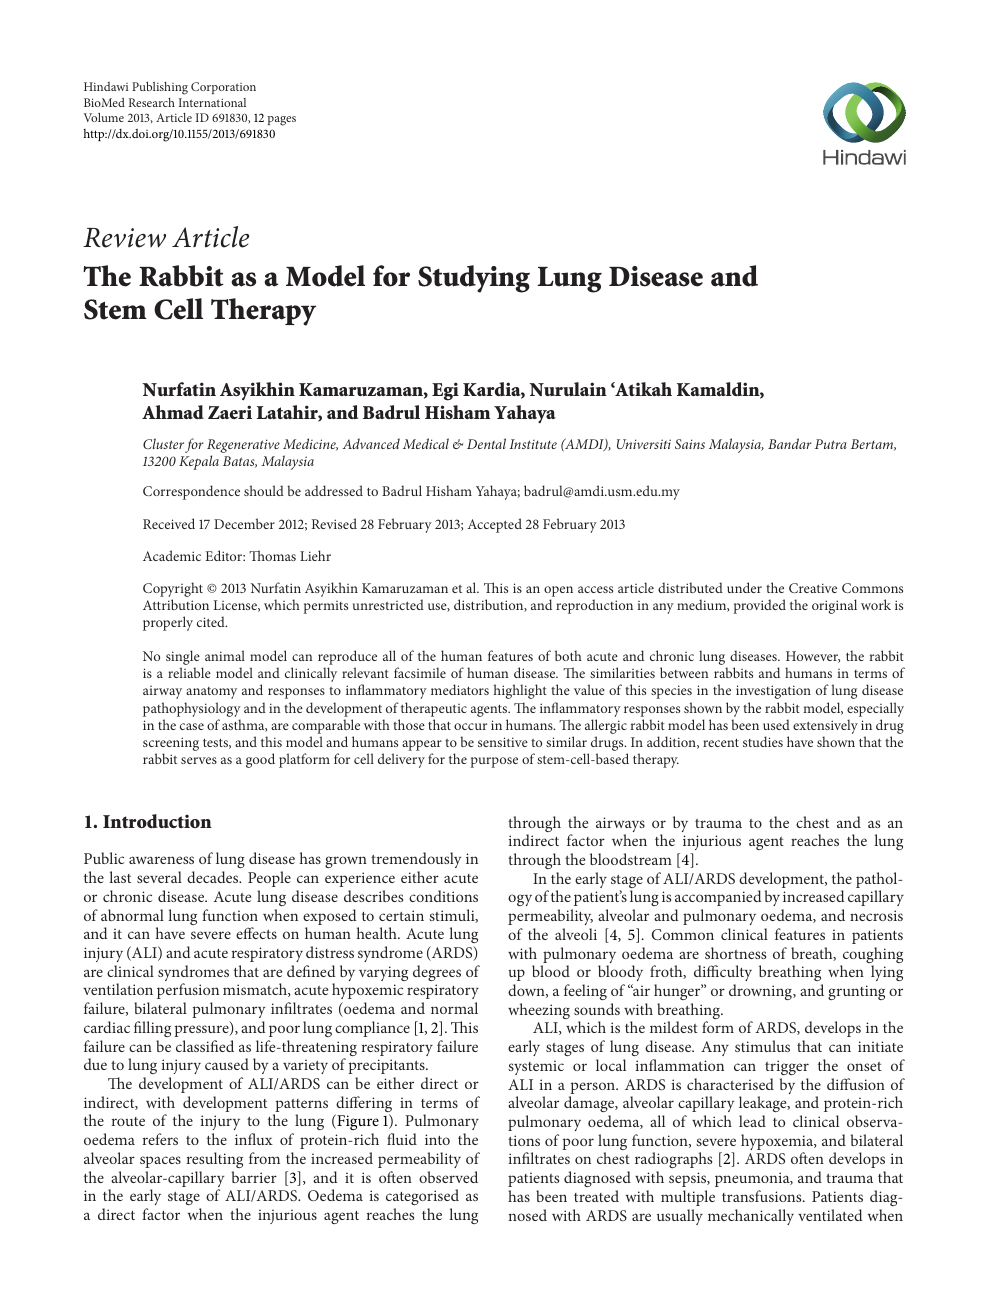 The Rabbit as a Model for Studying Lung Disease and Stem